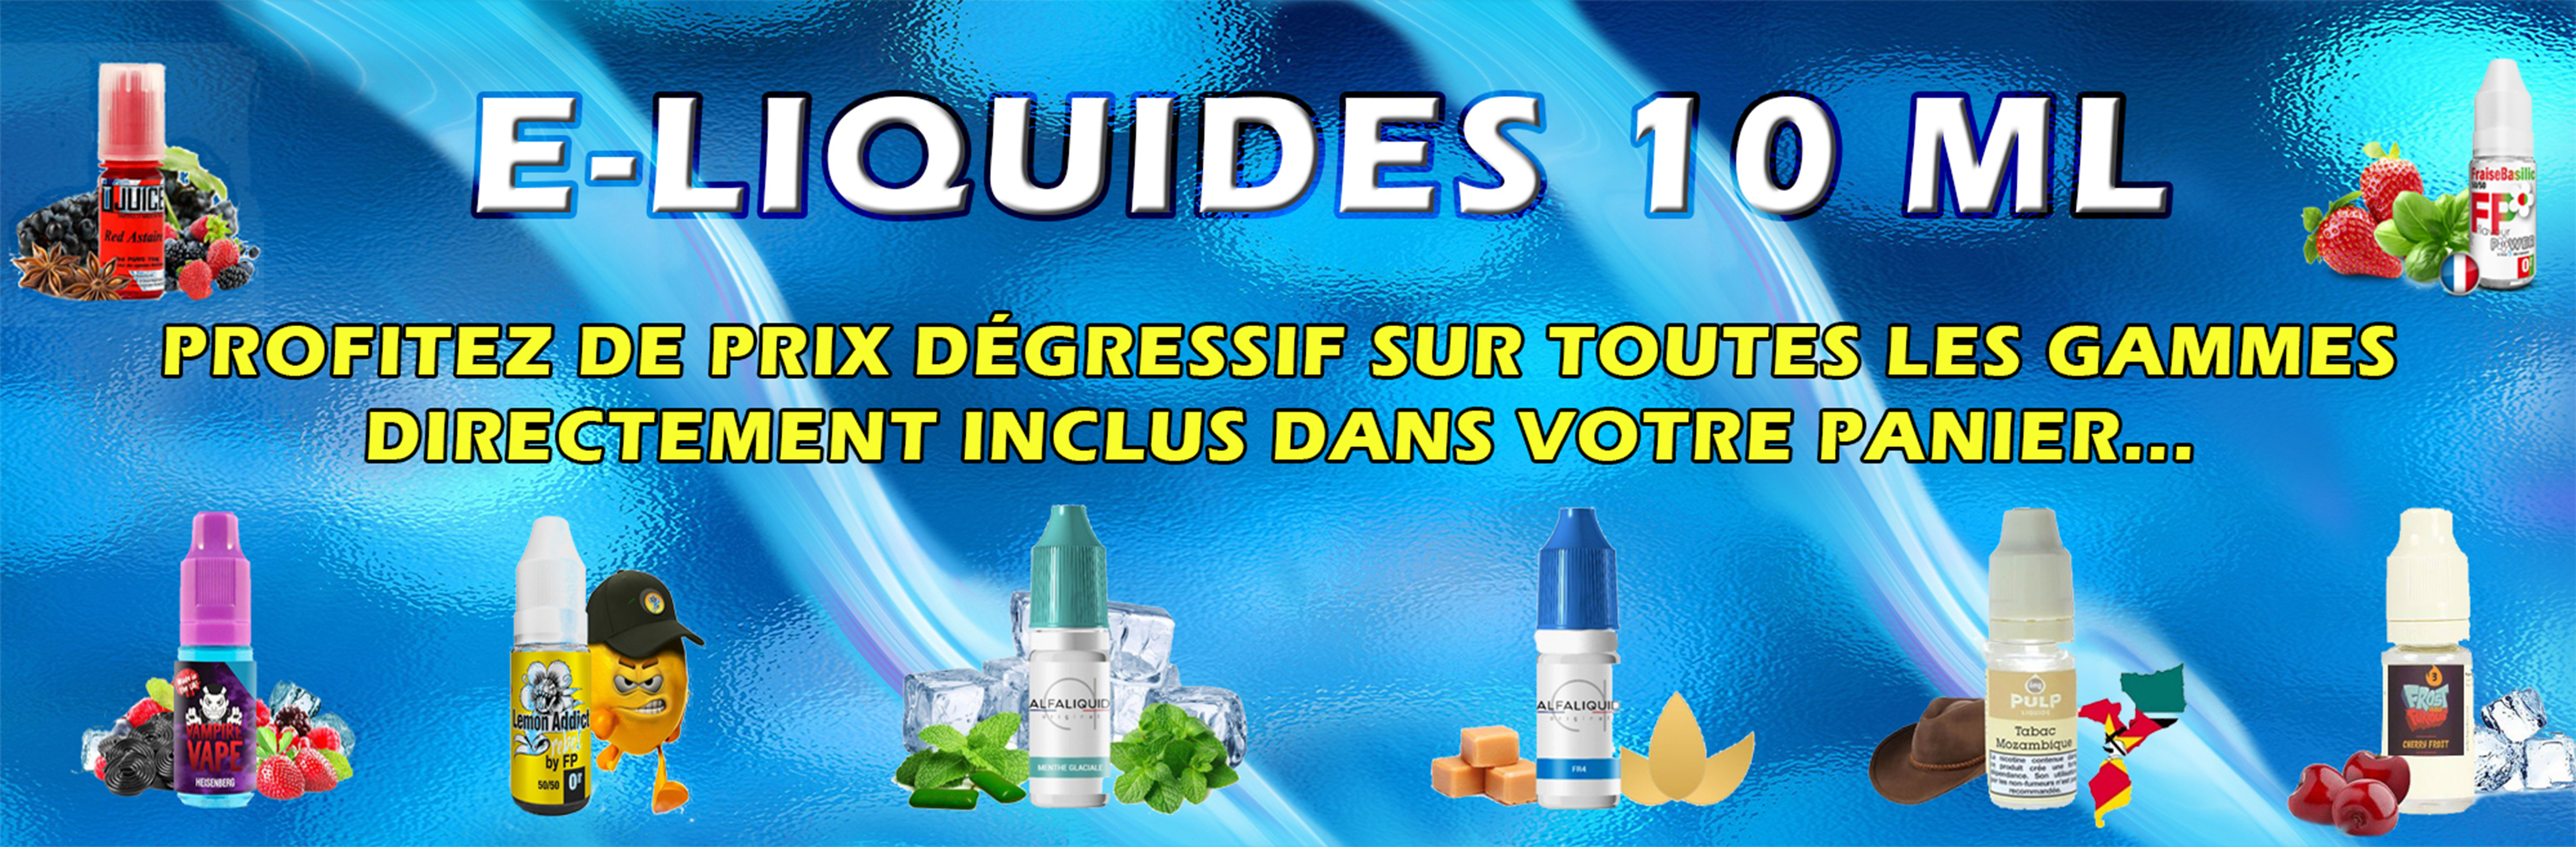 slide-prix-degressifs-juin-2020